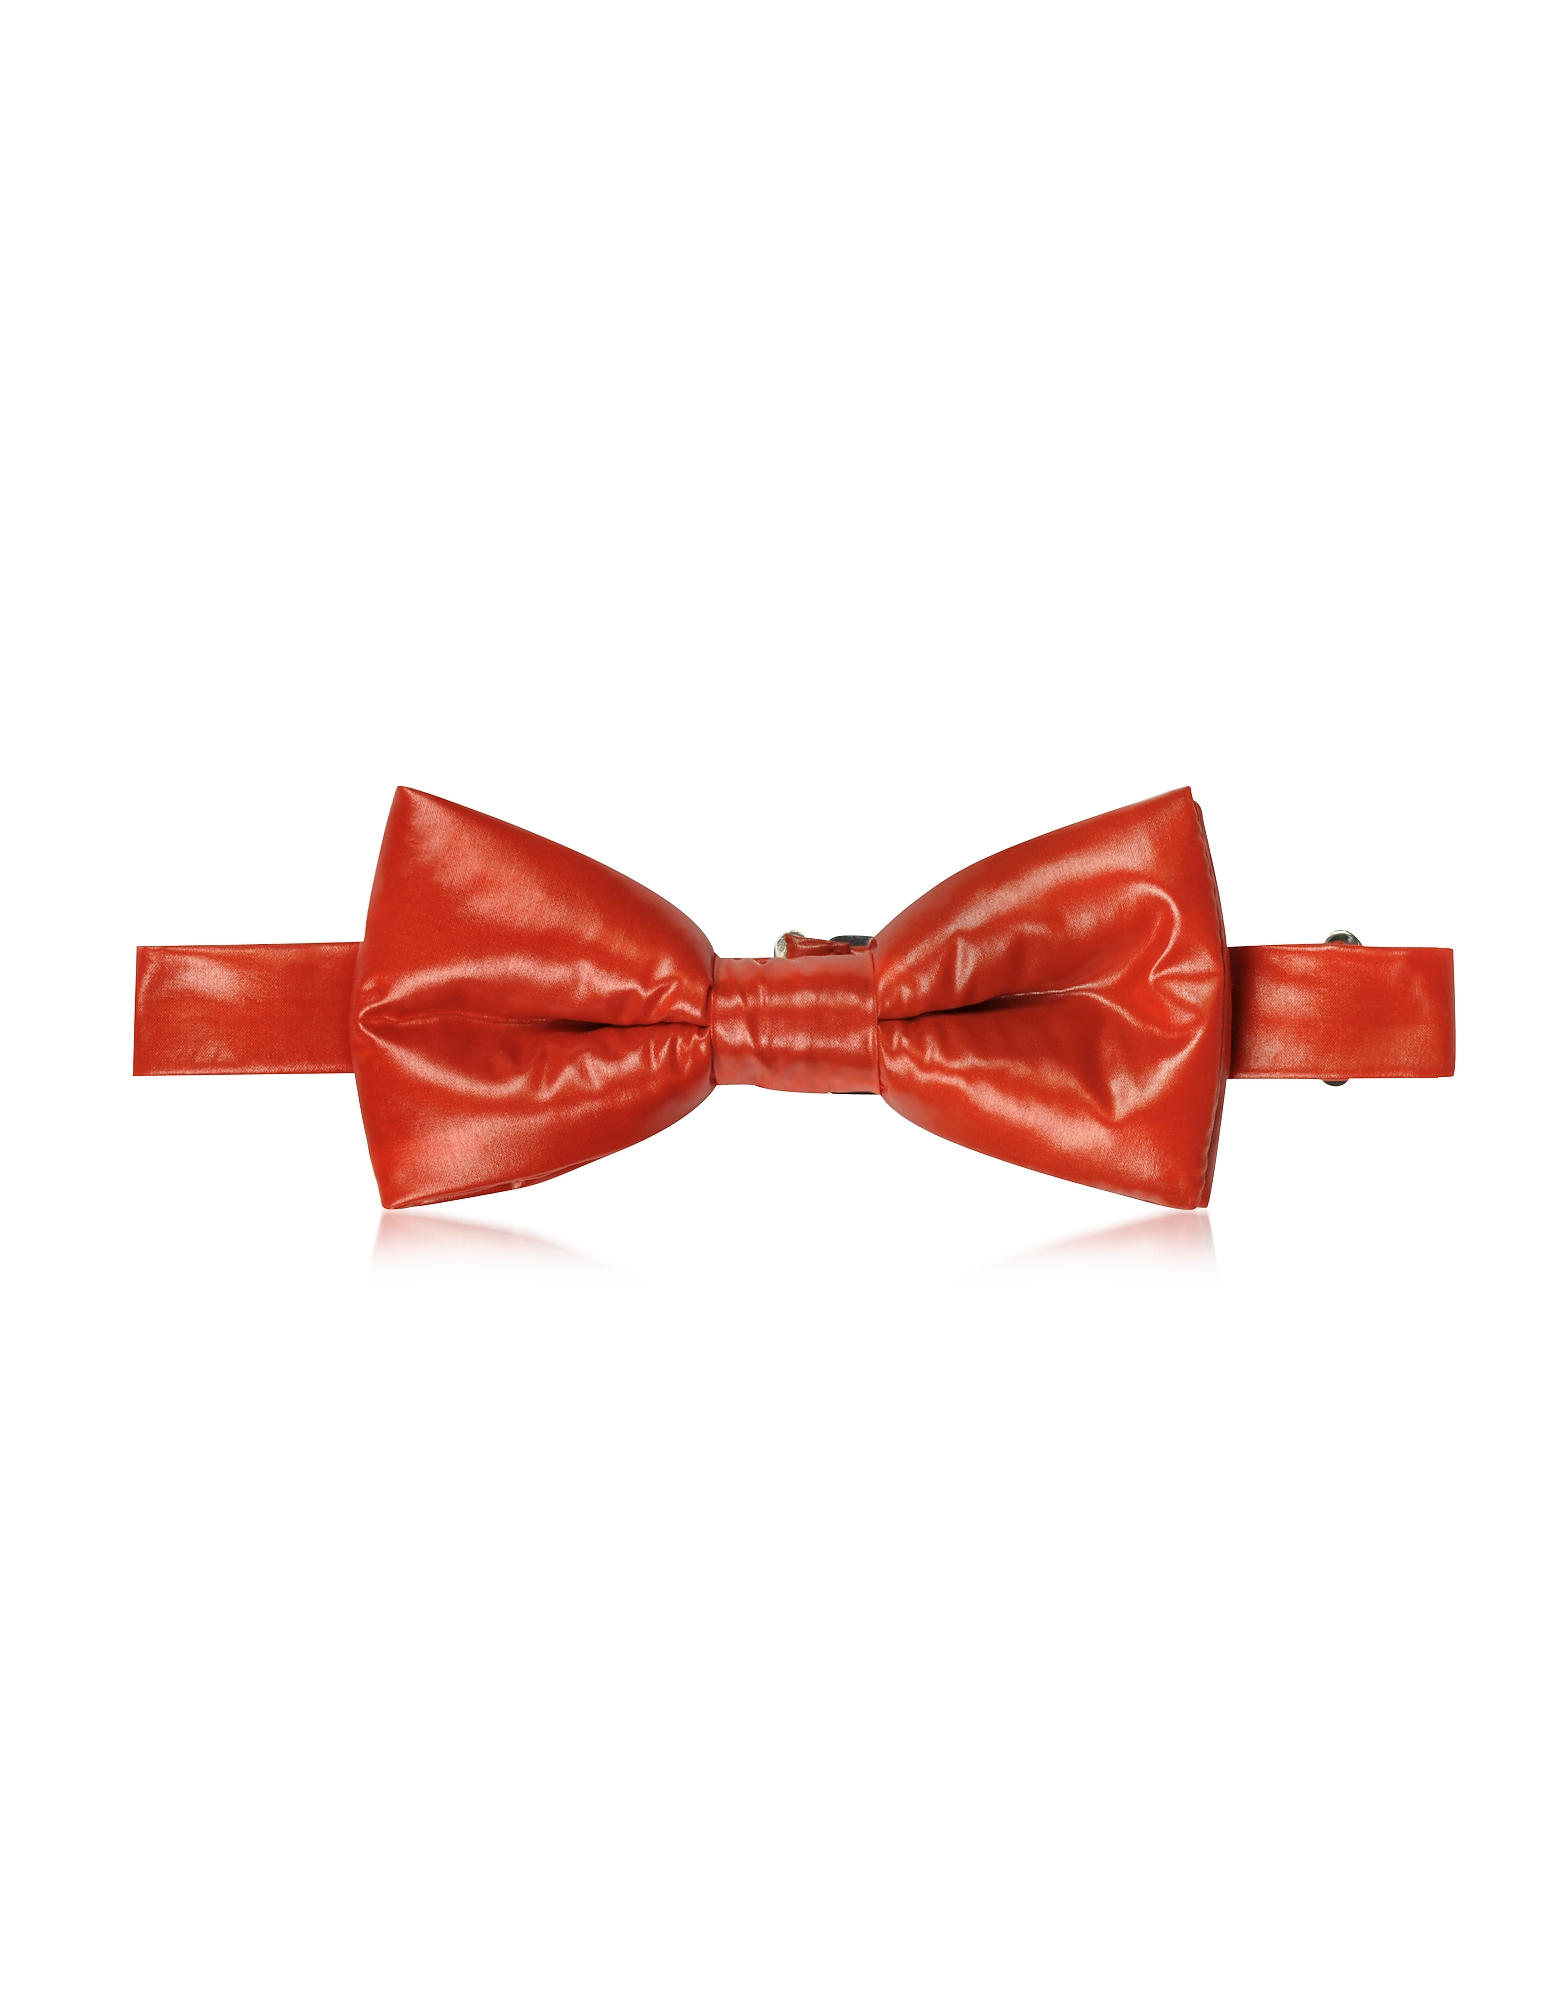 Forzieri Designer Bowties and Cummerbunds, Red Nylon Puffer Bow Tie